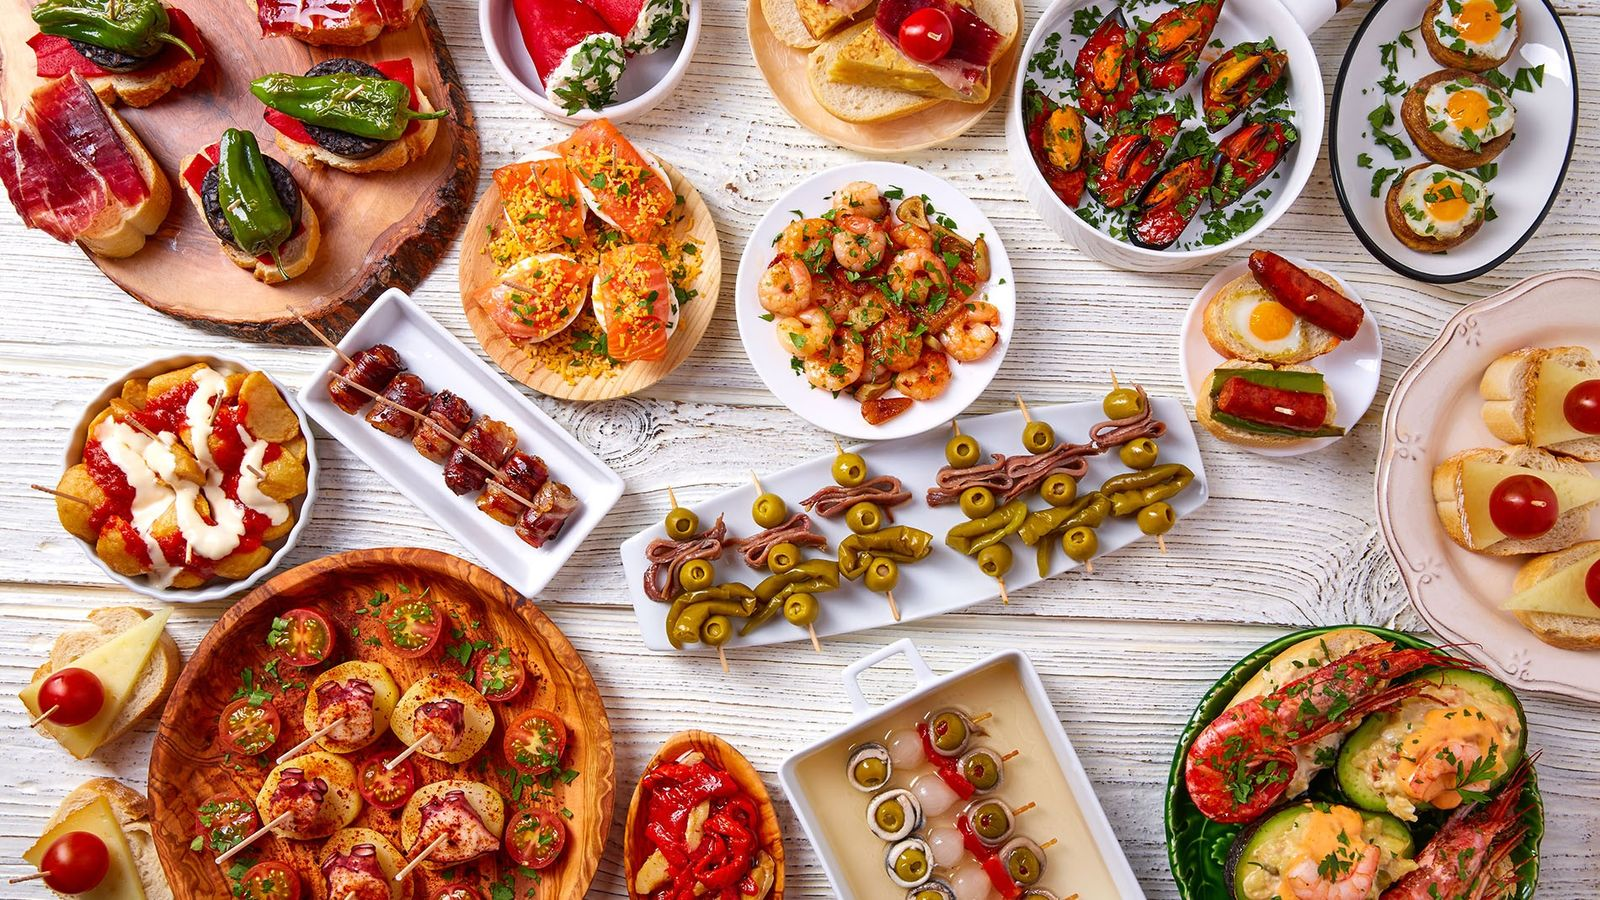 Our first virtual event will dive into the world of Spanish food